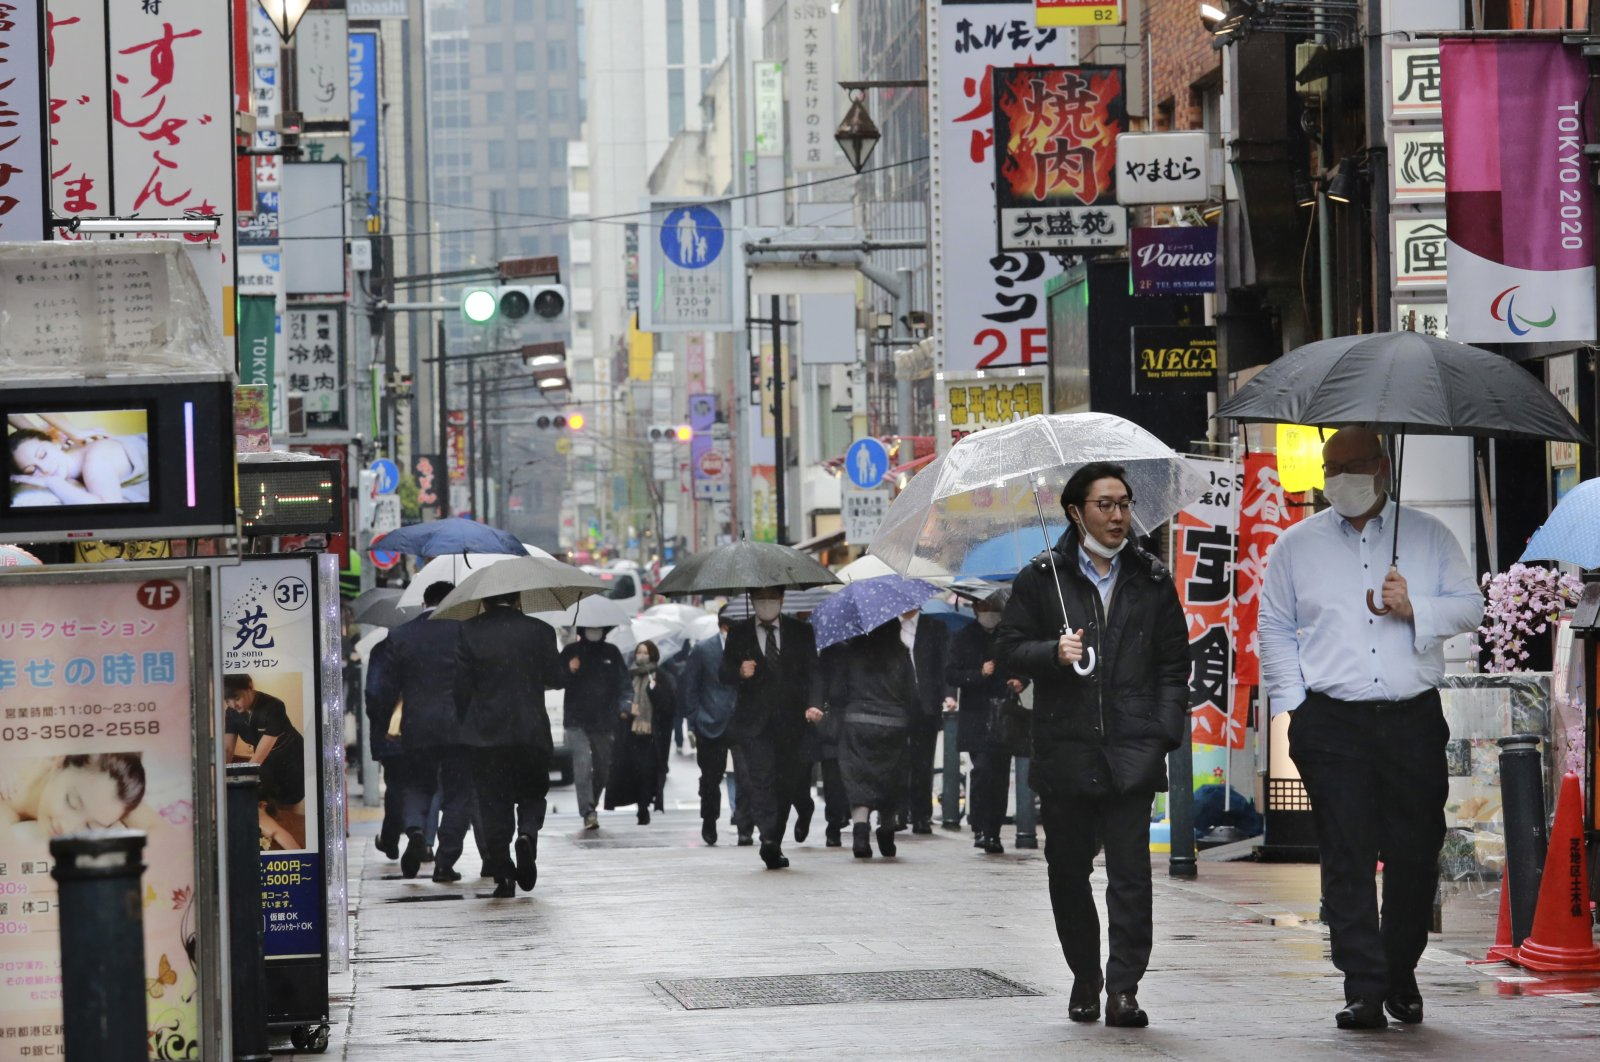 People wearing face masks to protect against the spread of the coronavirus walk on a street lined with bars and restaurants in Tokyo, March 8, 2021. (AP)